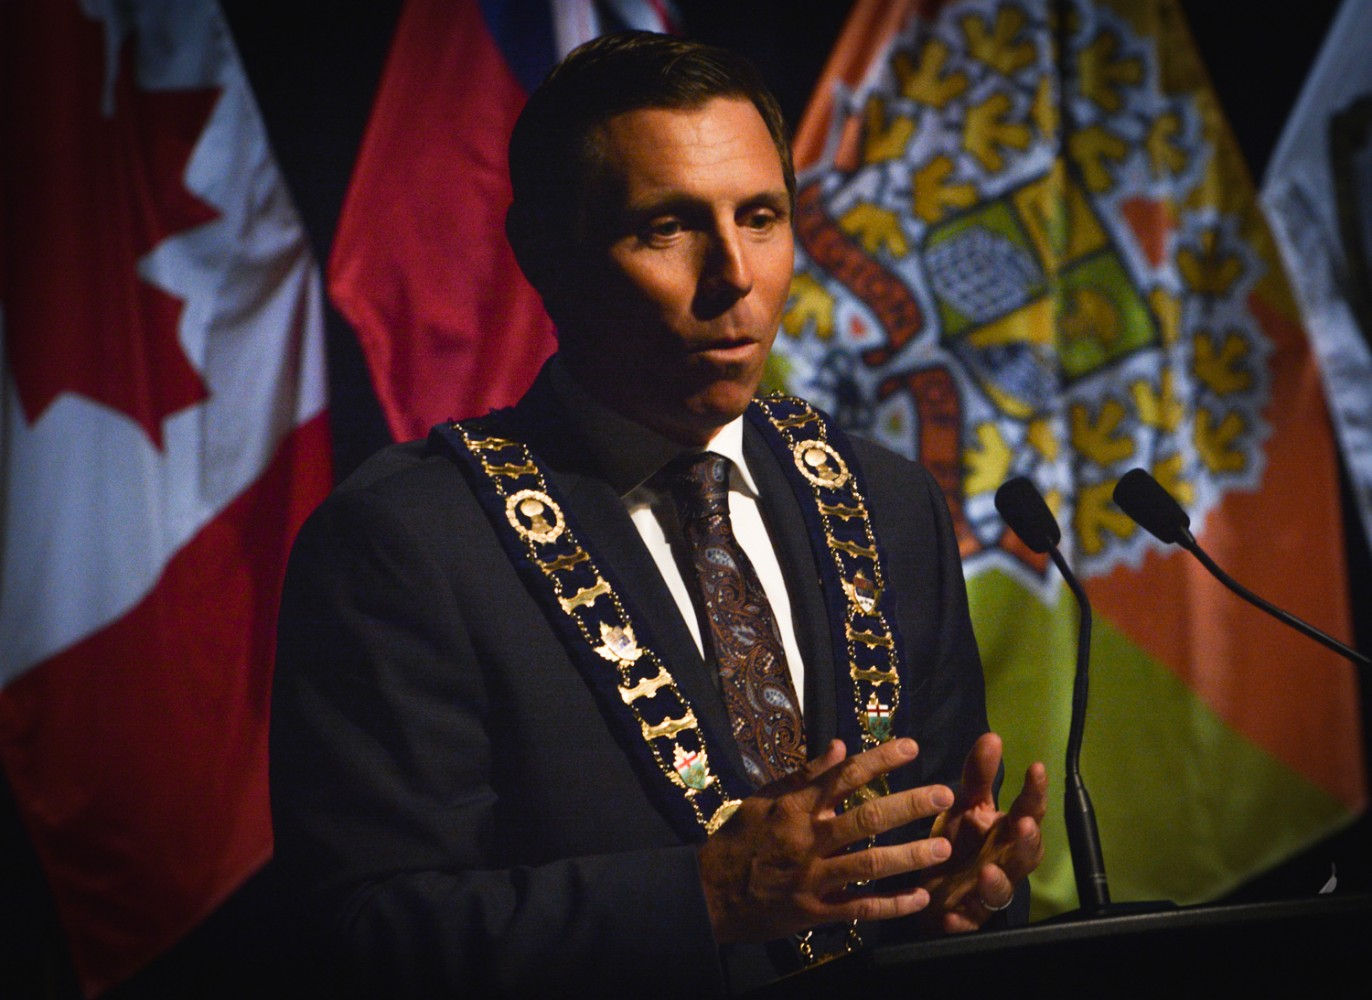 Patrick Brown's Camelot needs to serve the people of Brampton